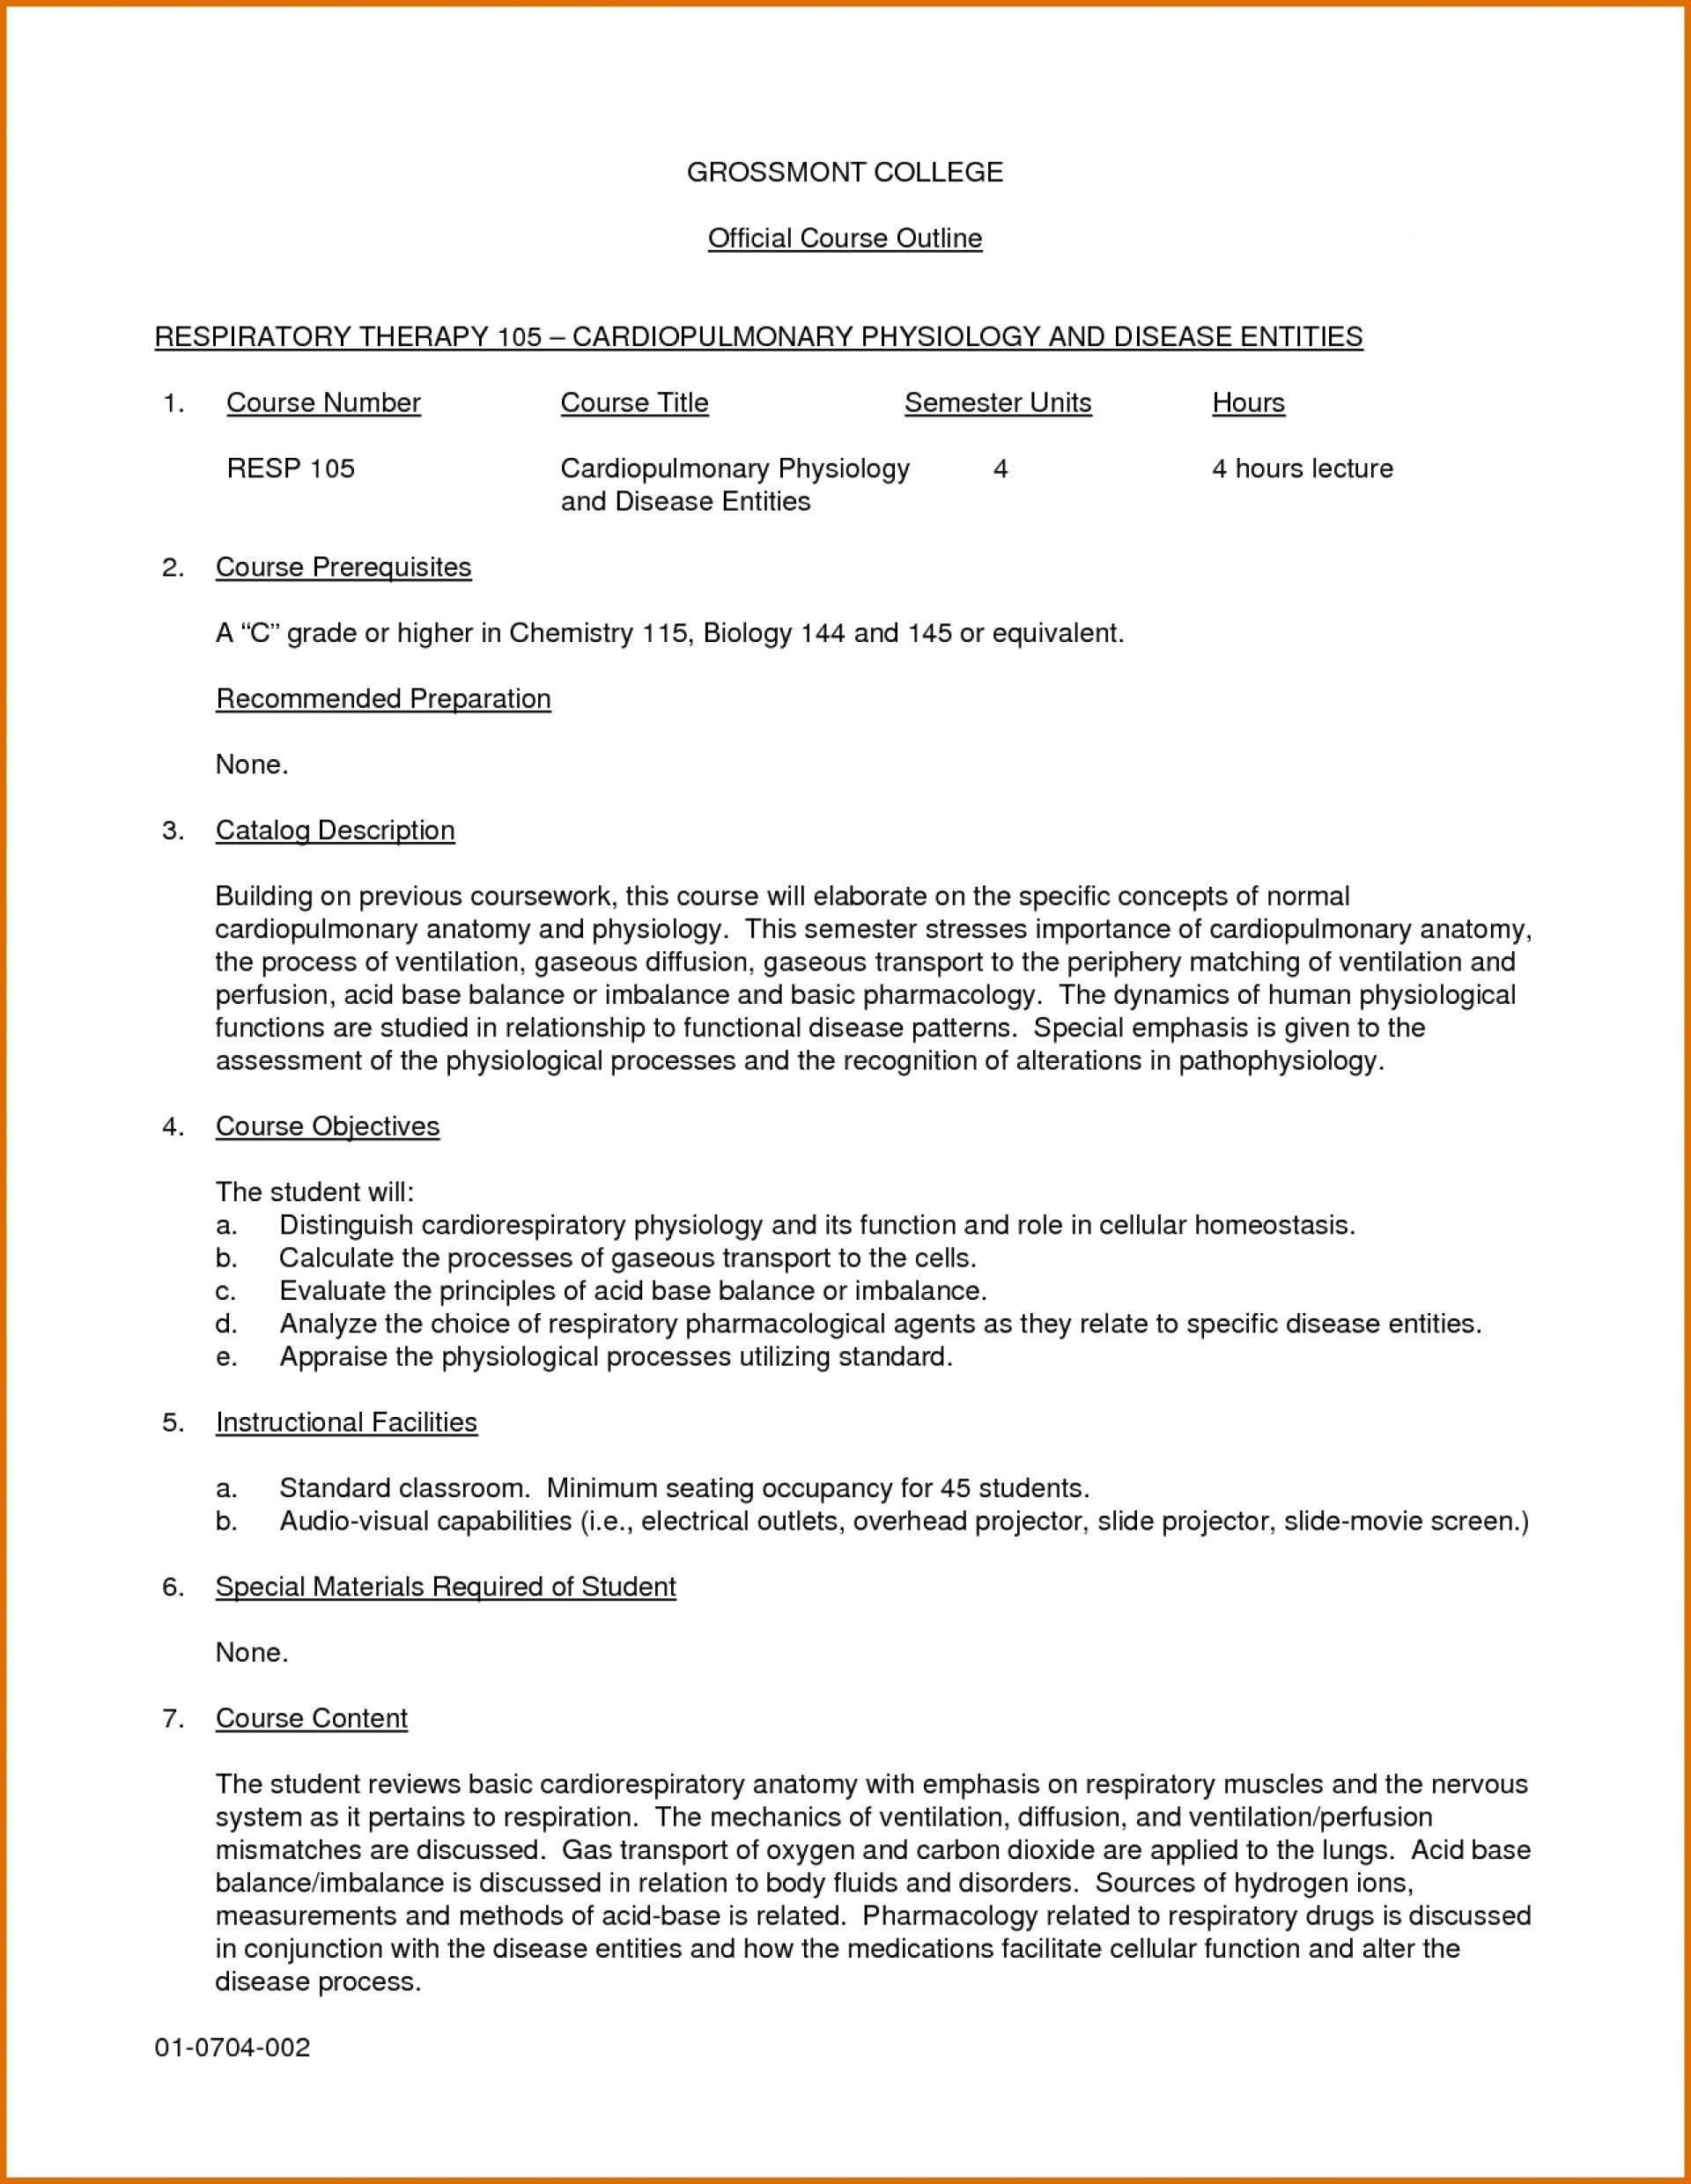 012 Research Paper Outline Template Essay Example Striking College Heading Format Pdf 1920